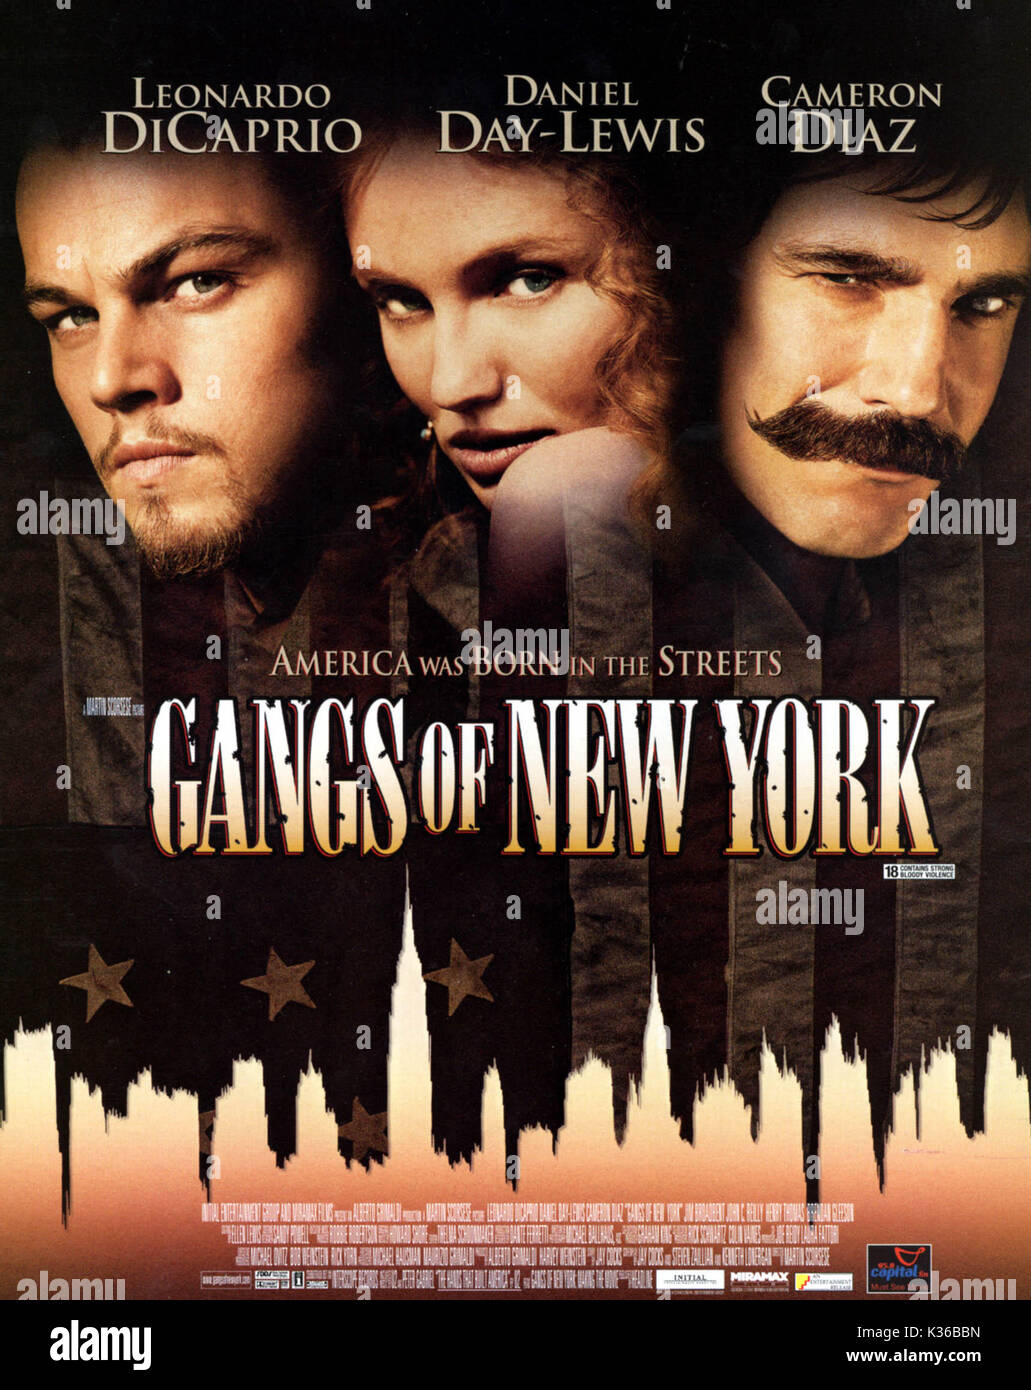 THE GANGS OF NEW YORK      Date: 2002 - Stock Image